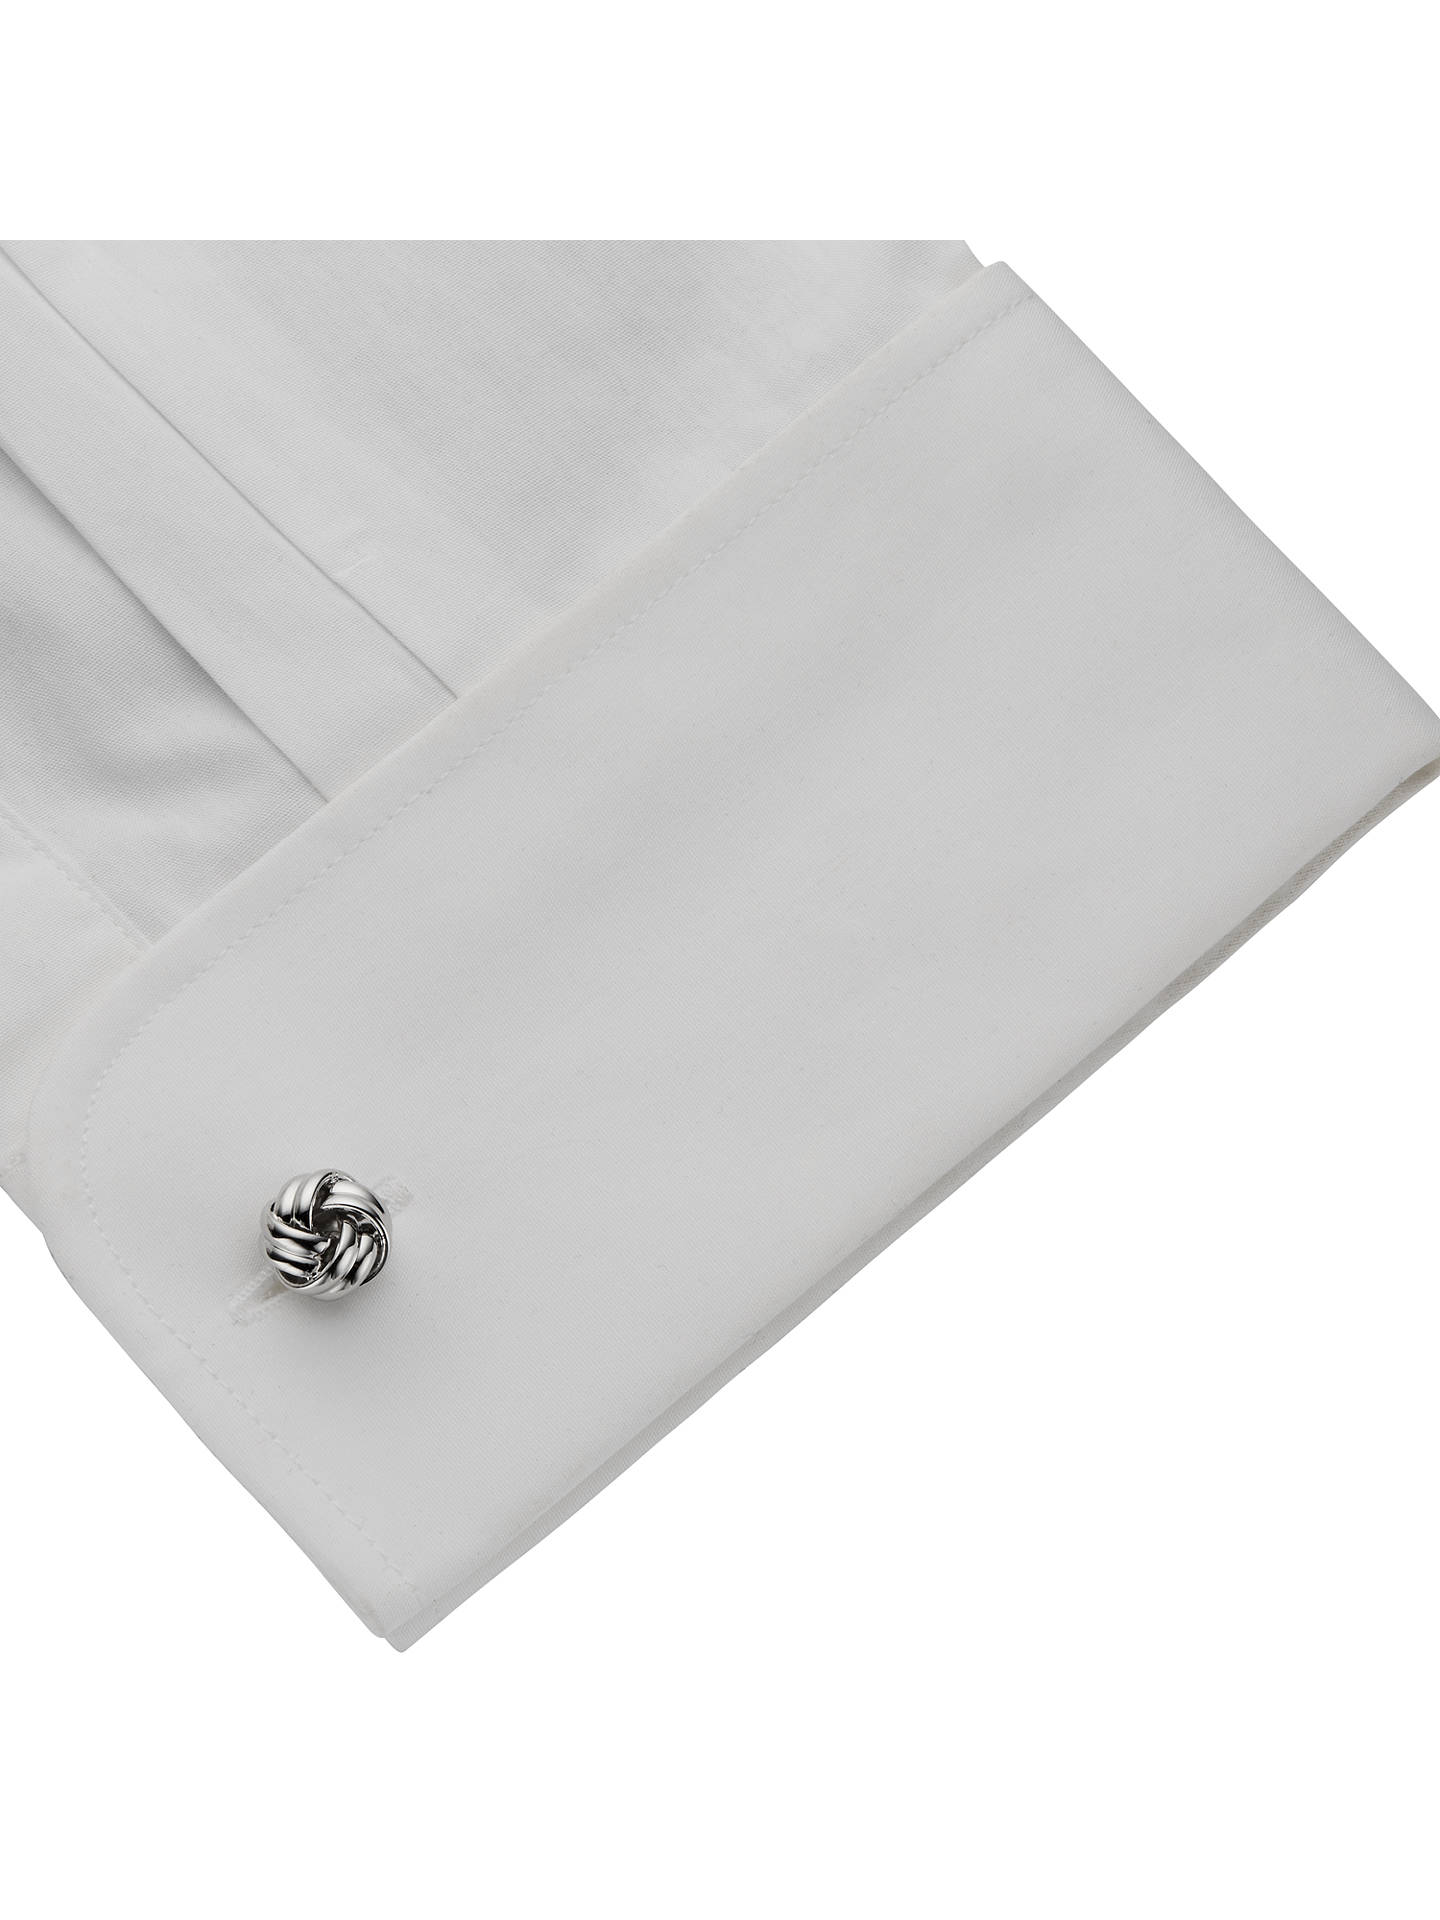 BuyJohn Lewis & Partners Classic Knot Cufflinks, Silver Online at johnlewis.com